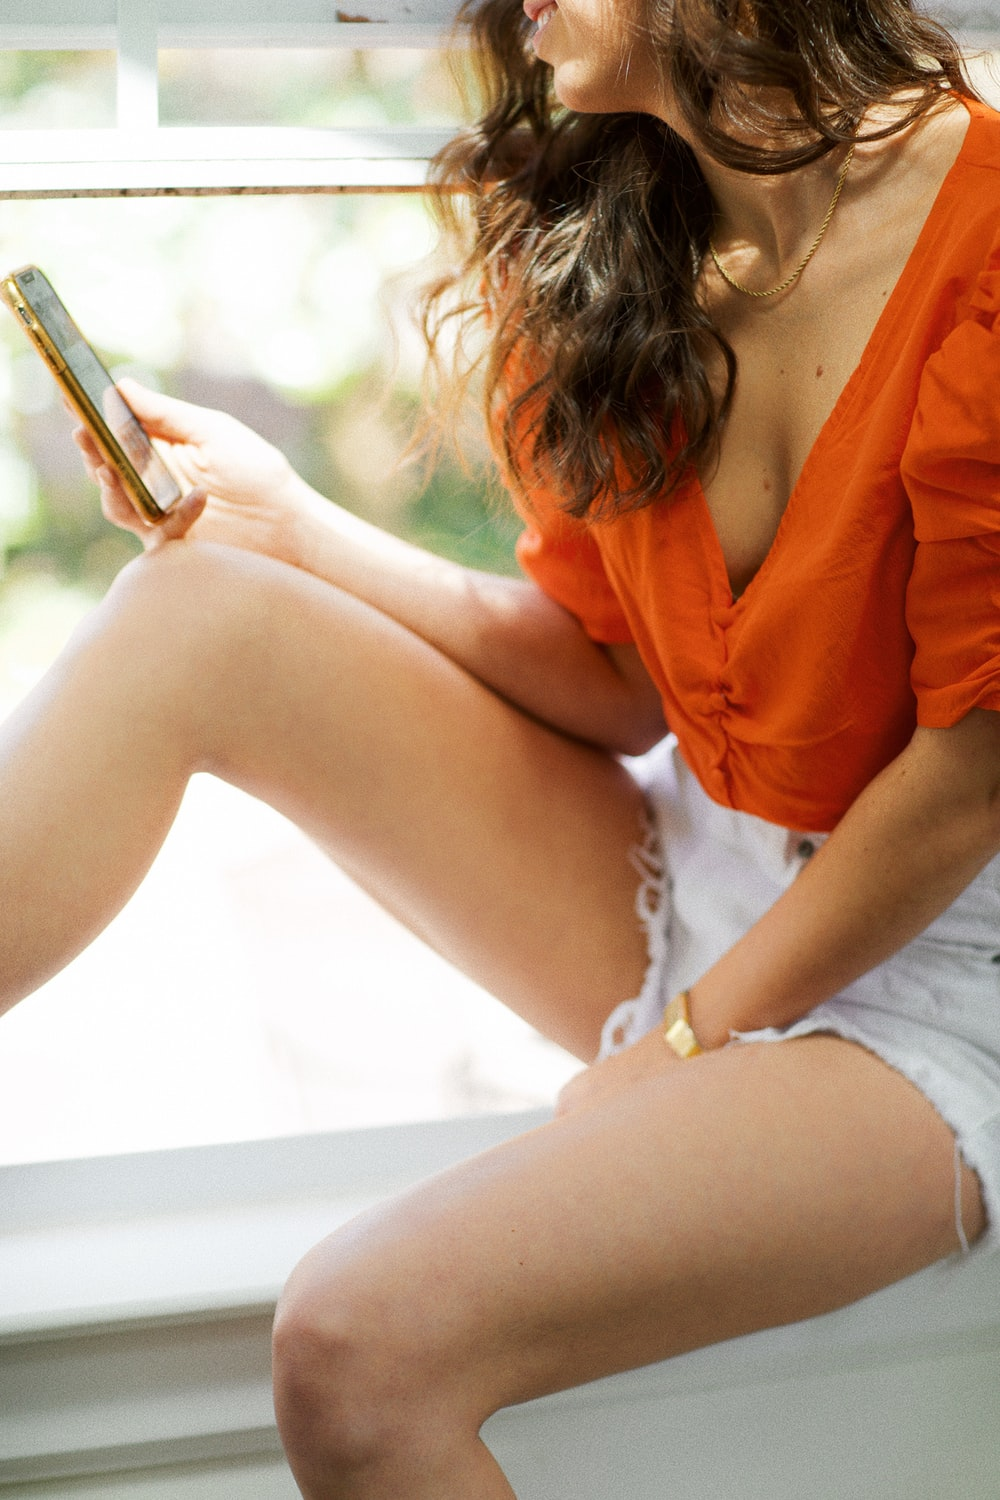 woman in orange long sleeve shirt and white shorts sitting on white bench